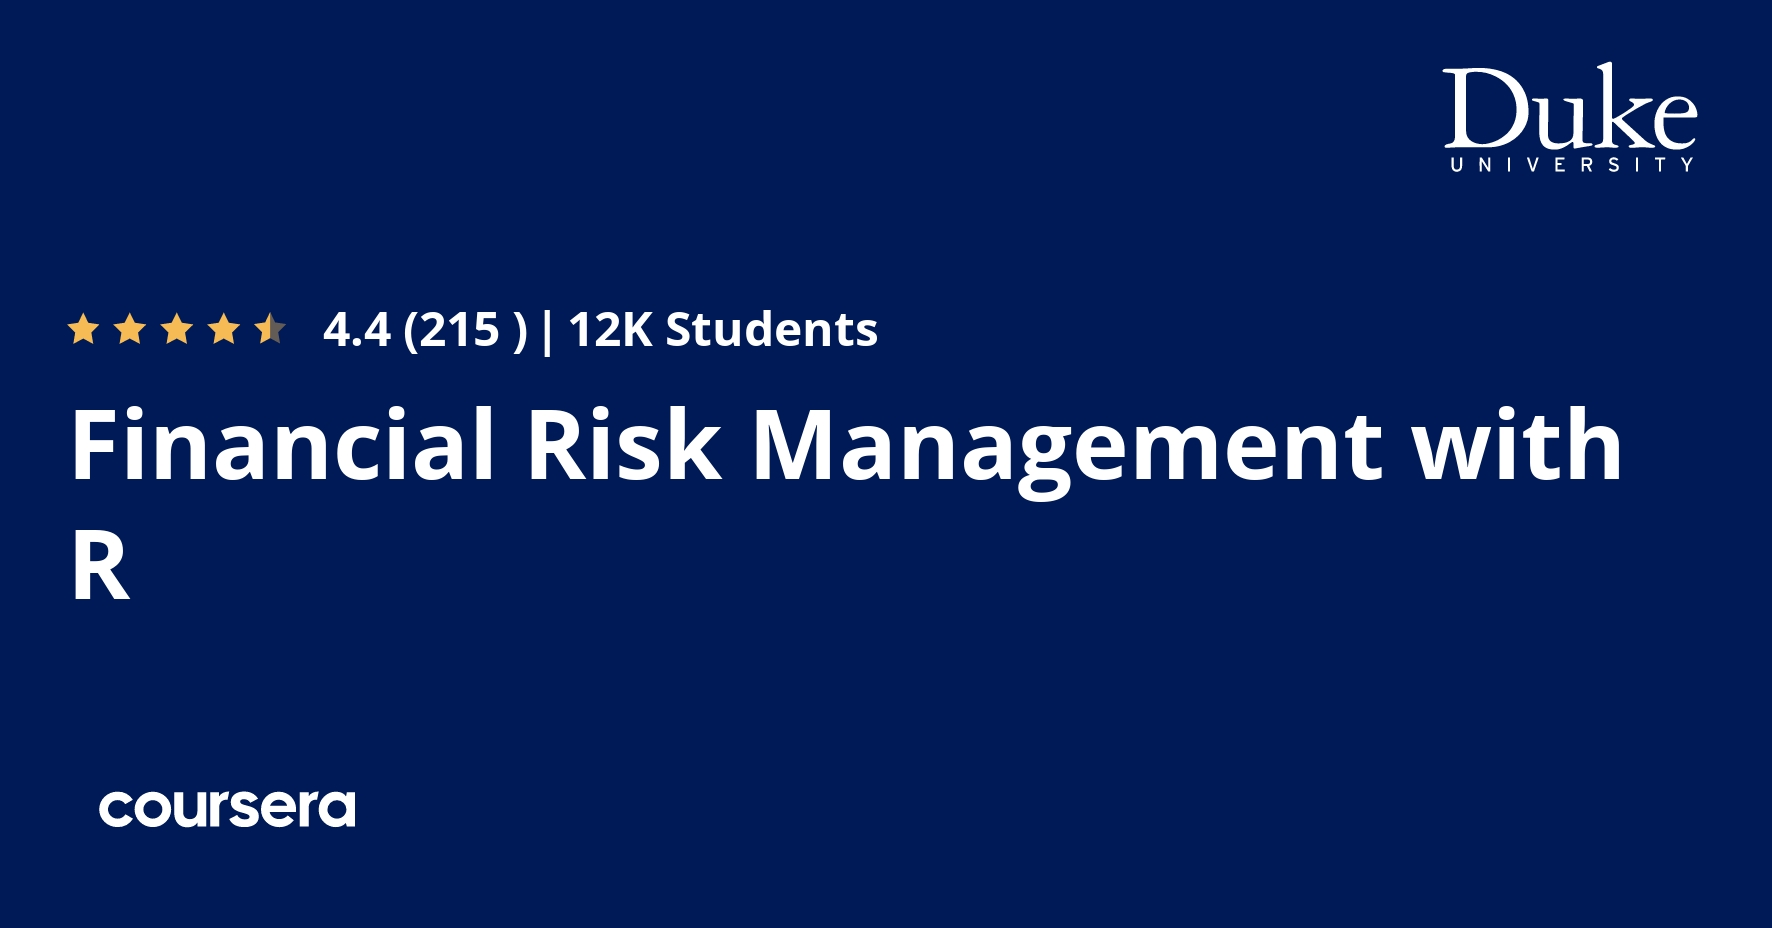 Financial Risk Management with R